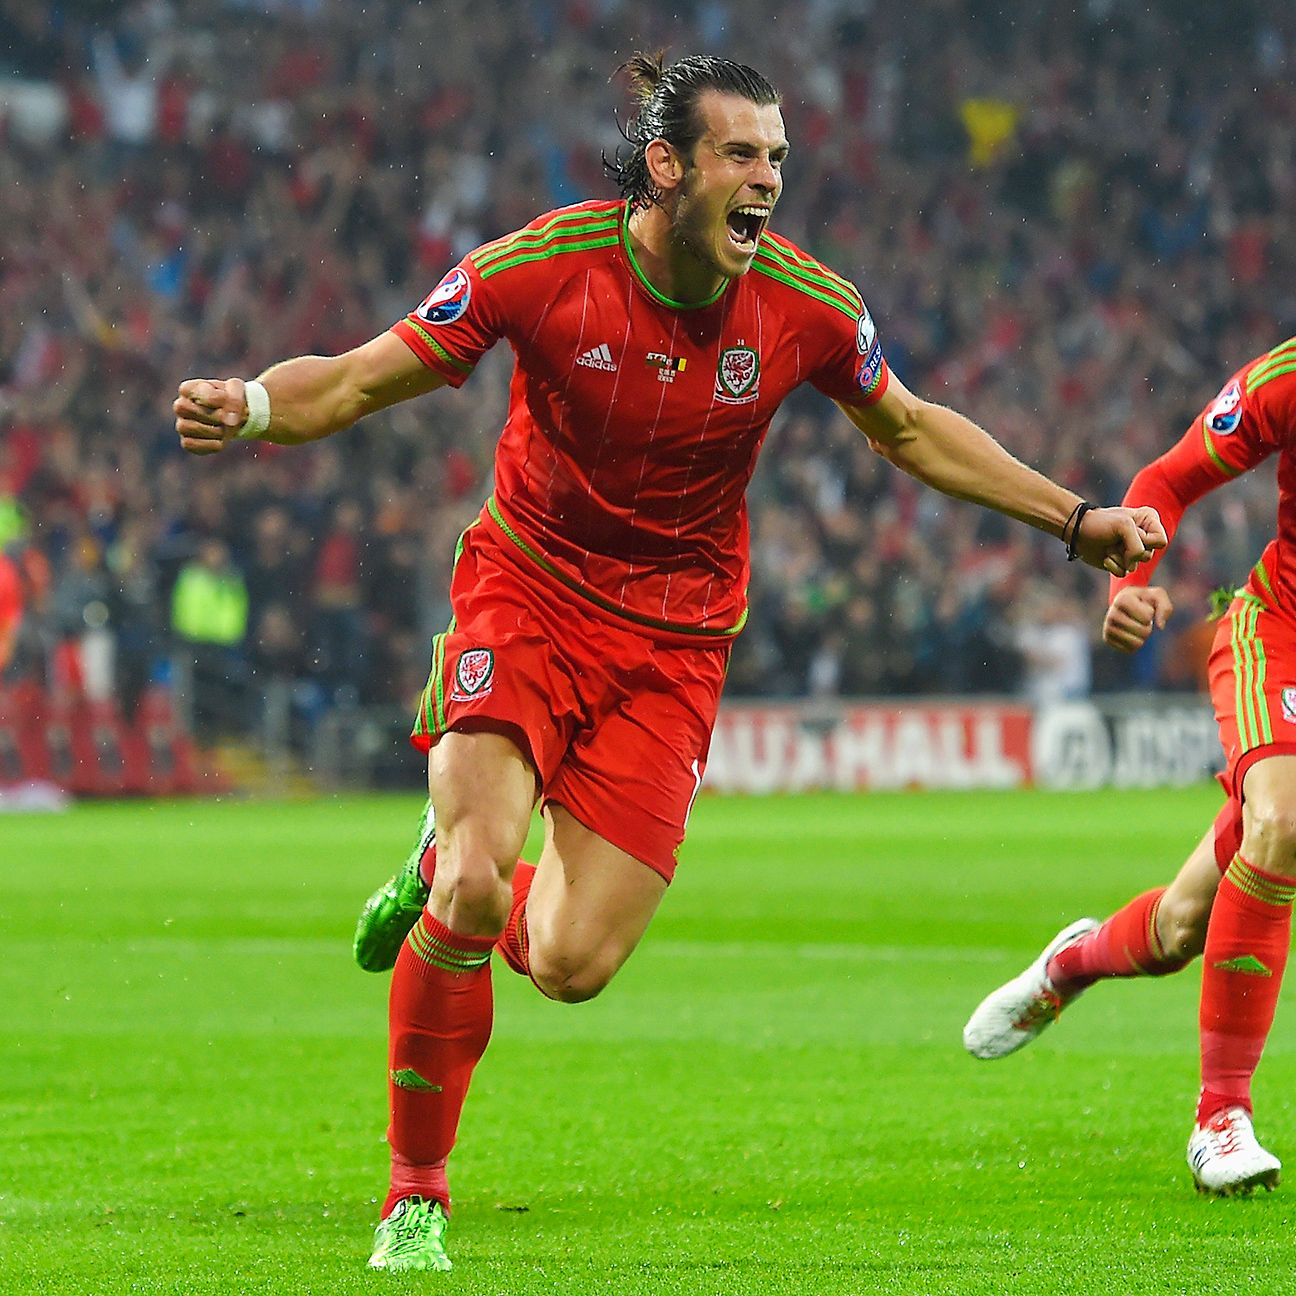 Gareth Bale's winner has Wales sitting pretty atop Group B.